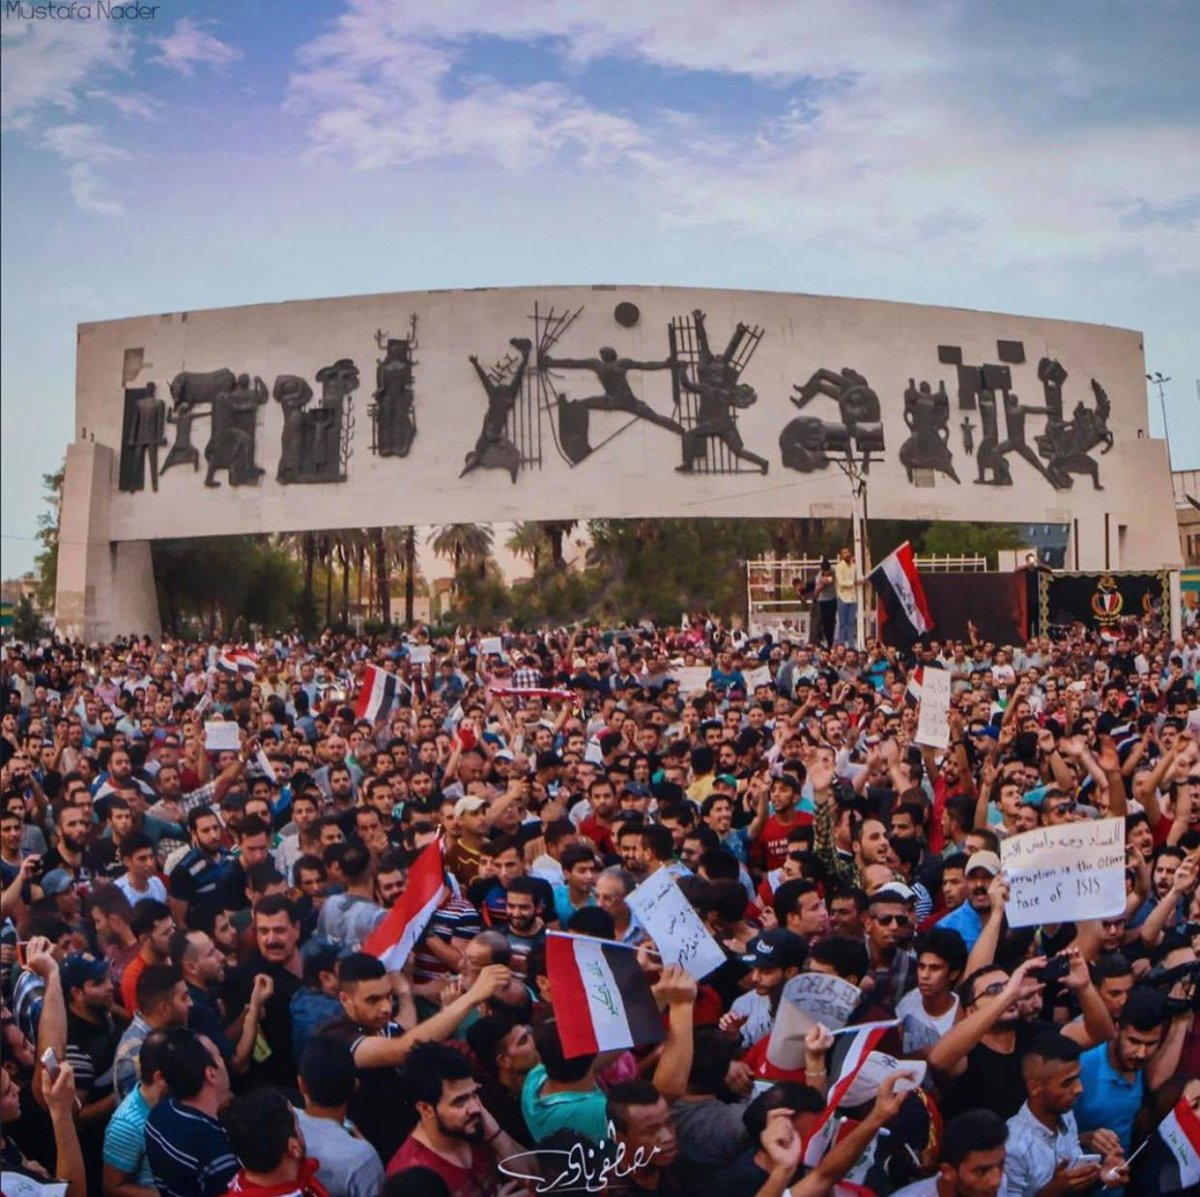 Protesters at Tahrir Square in Baghdad, Iraq.